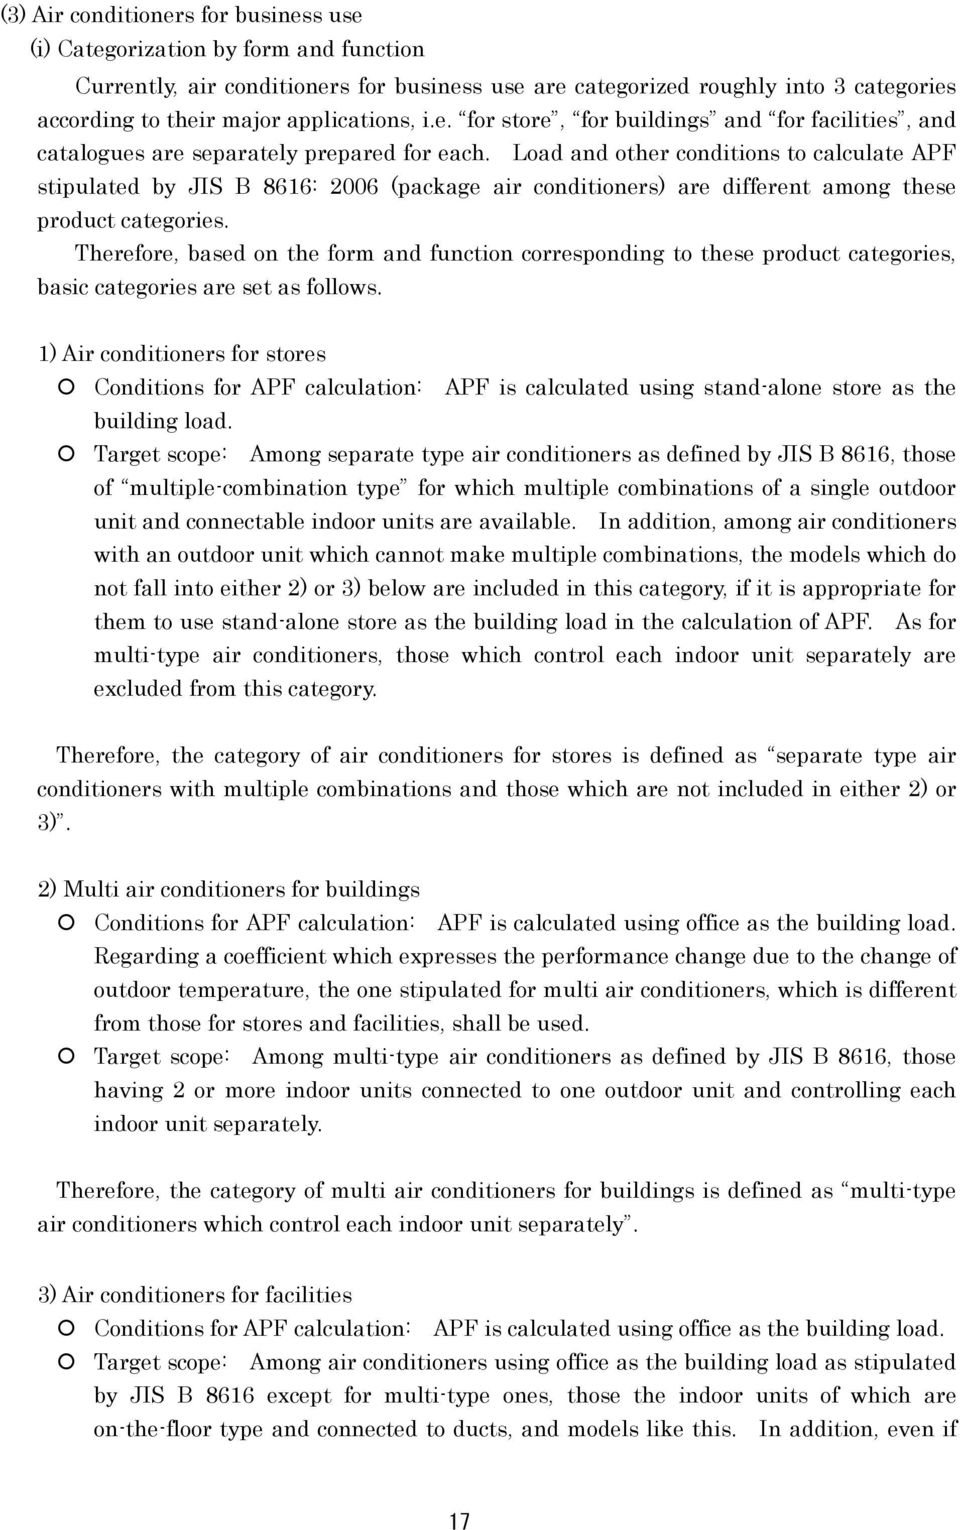 Load and other conditions to calculate APF stipulated by JIS B 8616: 2006 (package air conditioners) are different among these product categories.